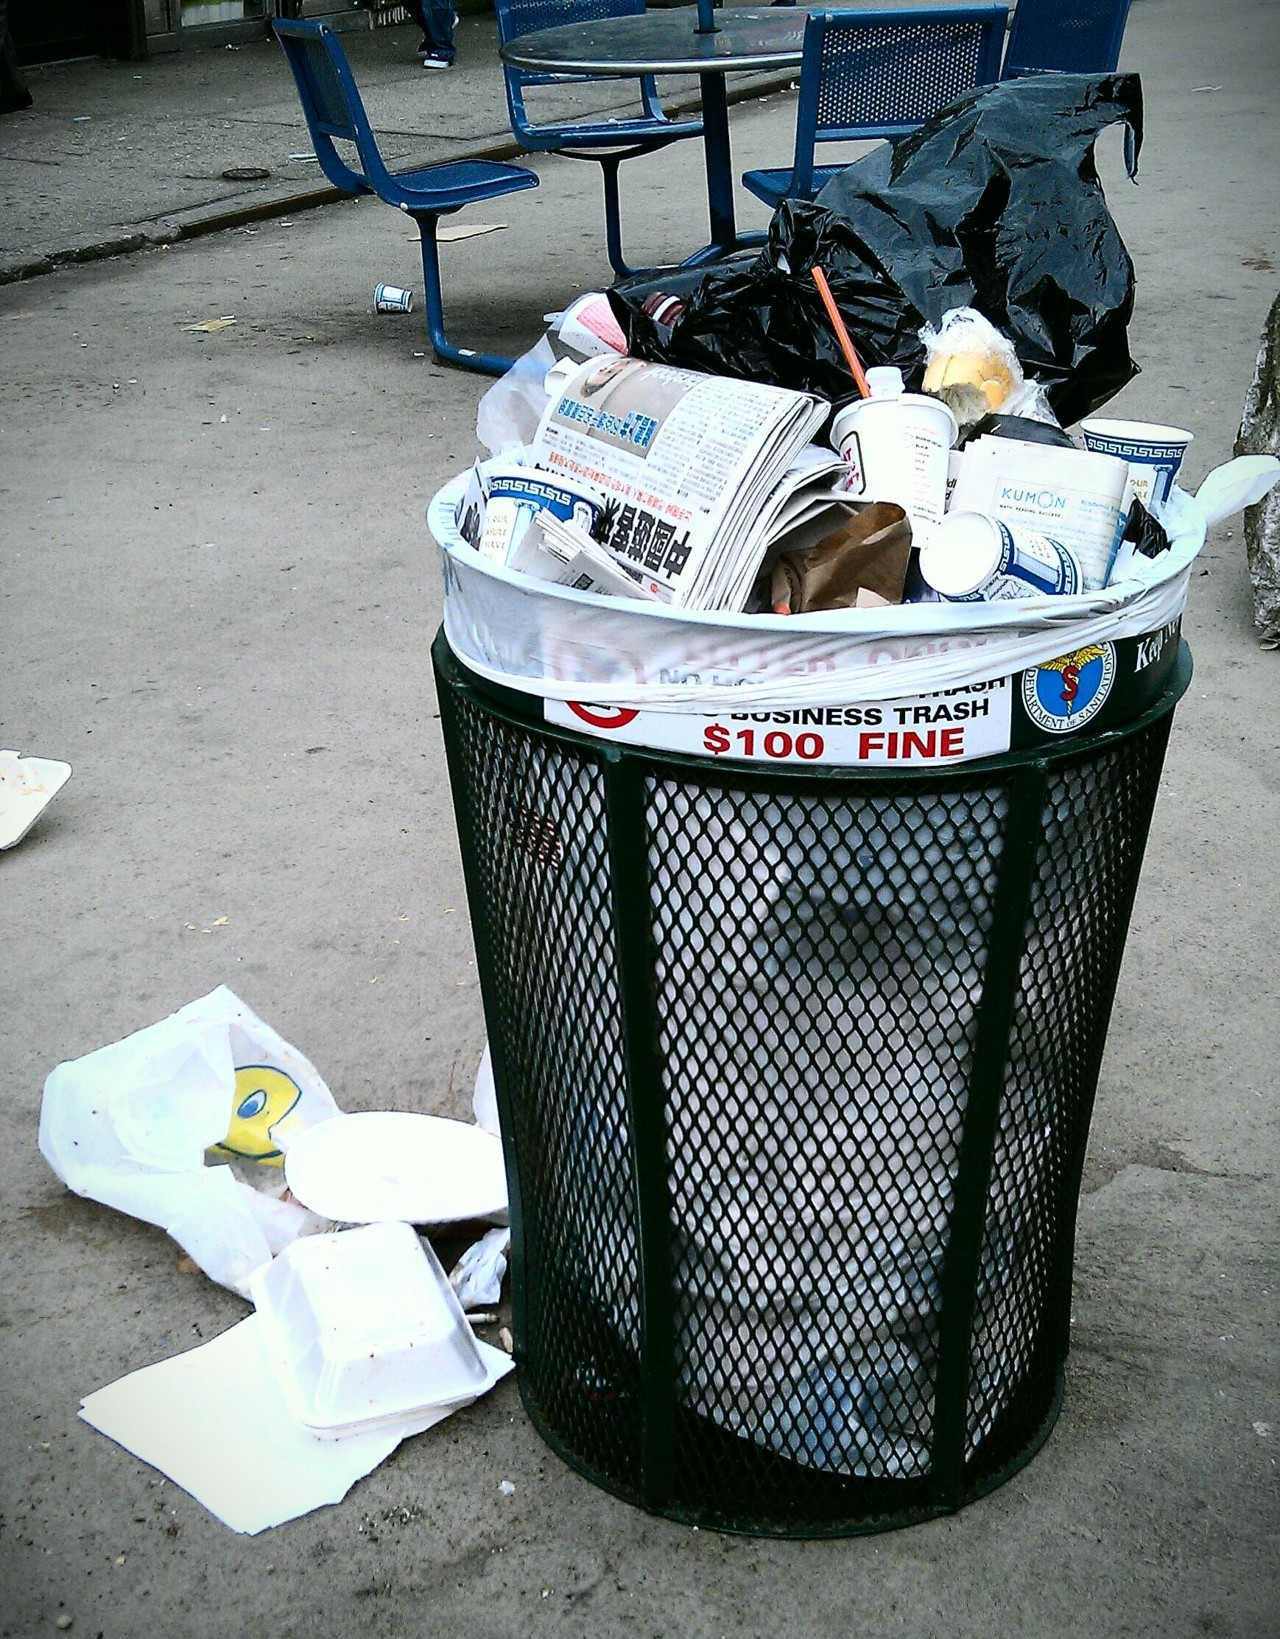 Trash can, 37th Road pedestrian plaza. From The Wall Street Journal:  As pedestrian plazas go, the one in the heart of Jackson Heights's commercial district isn't very attractive. OK, it's downright ugly.